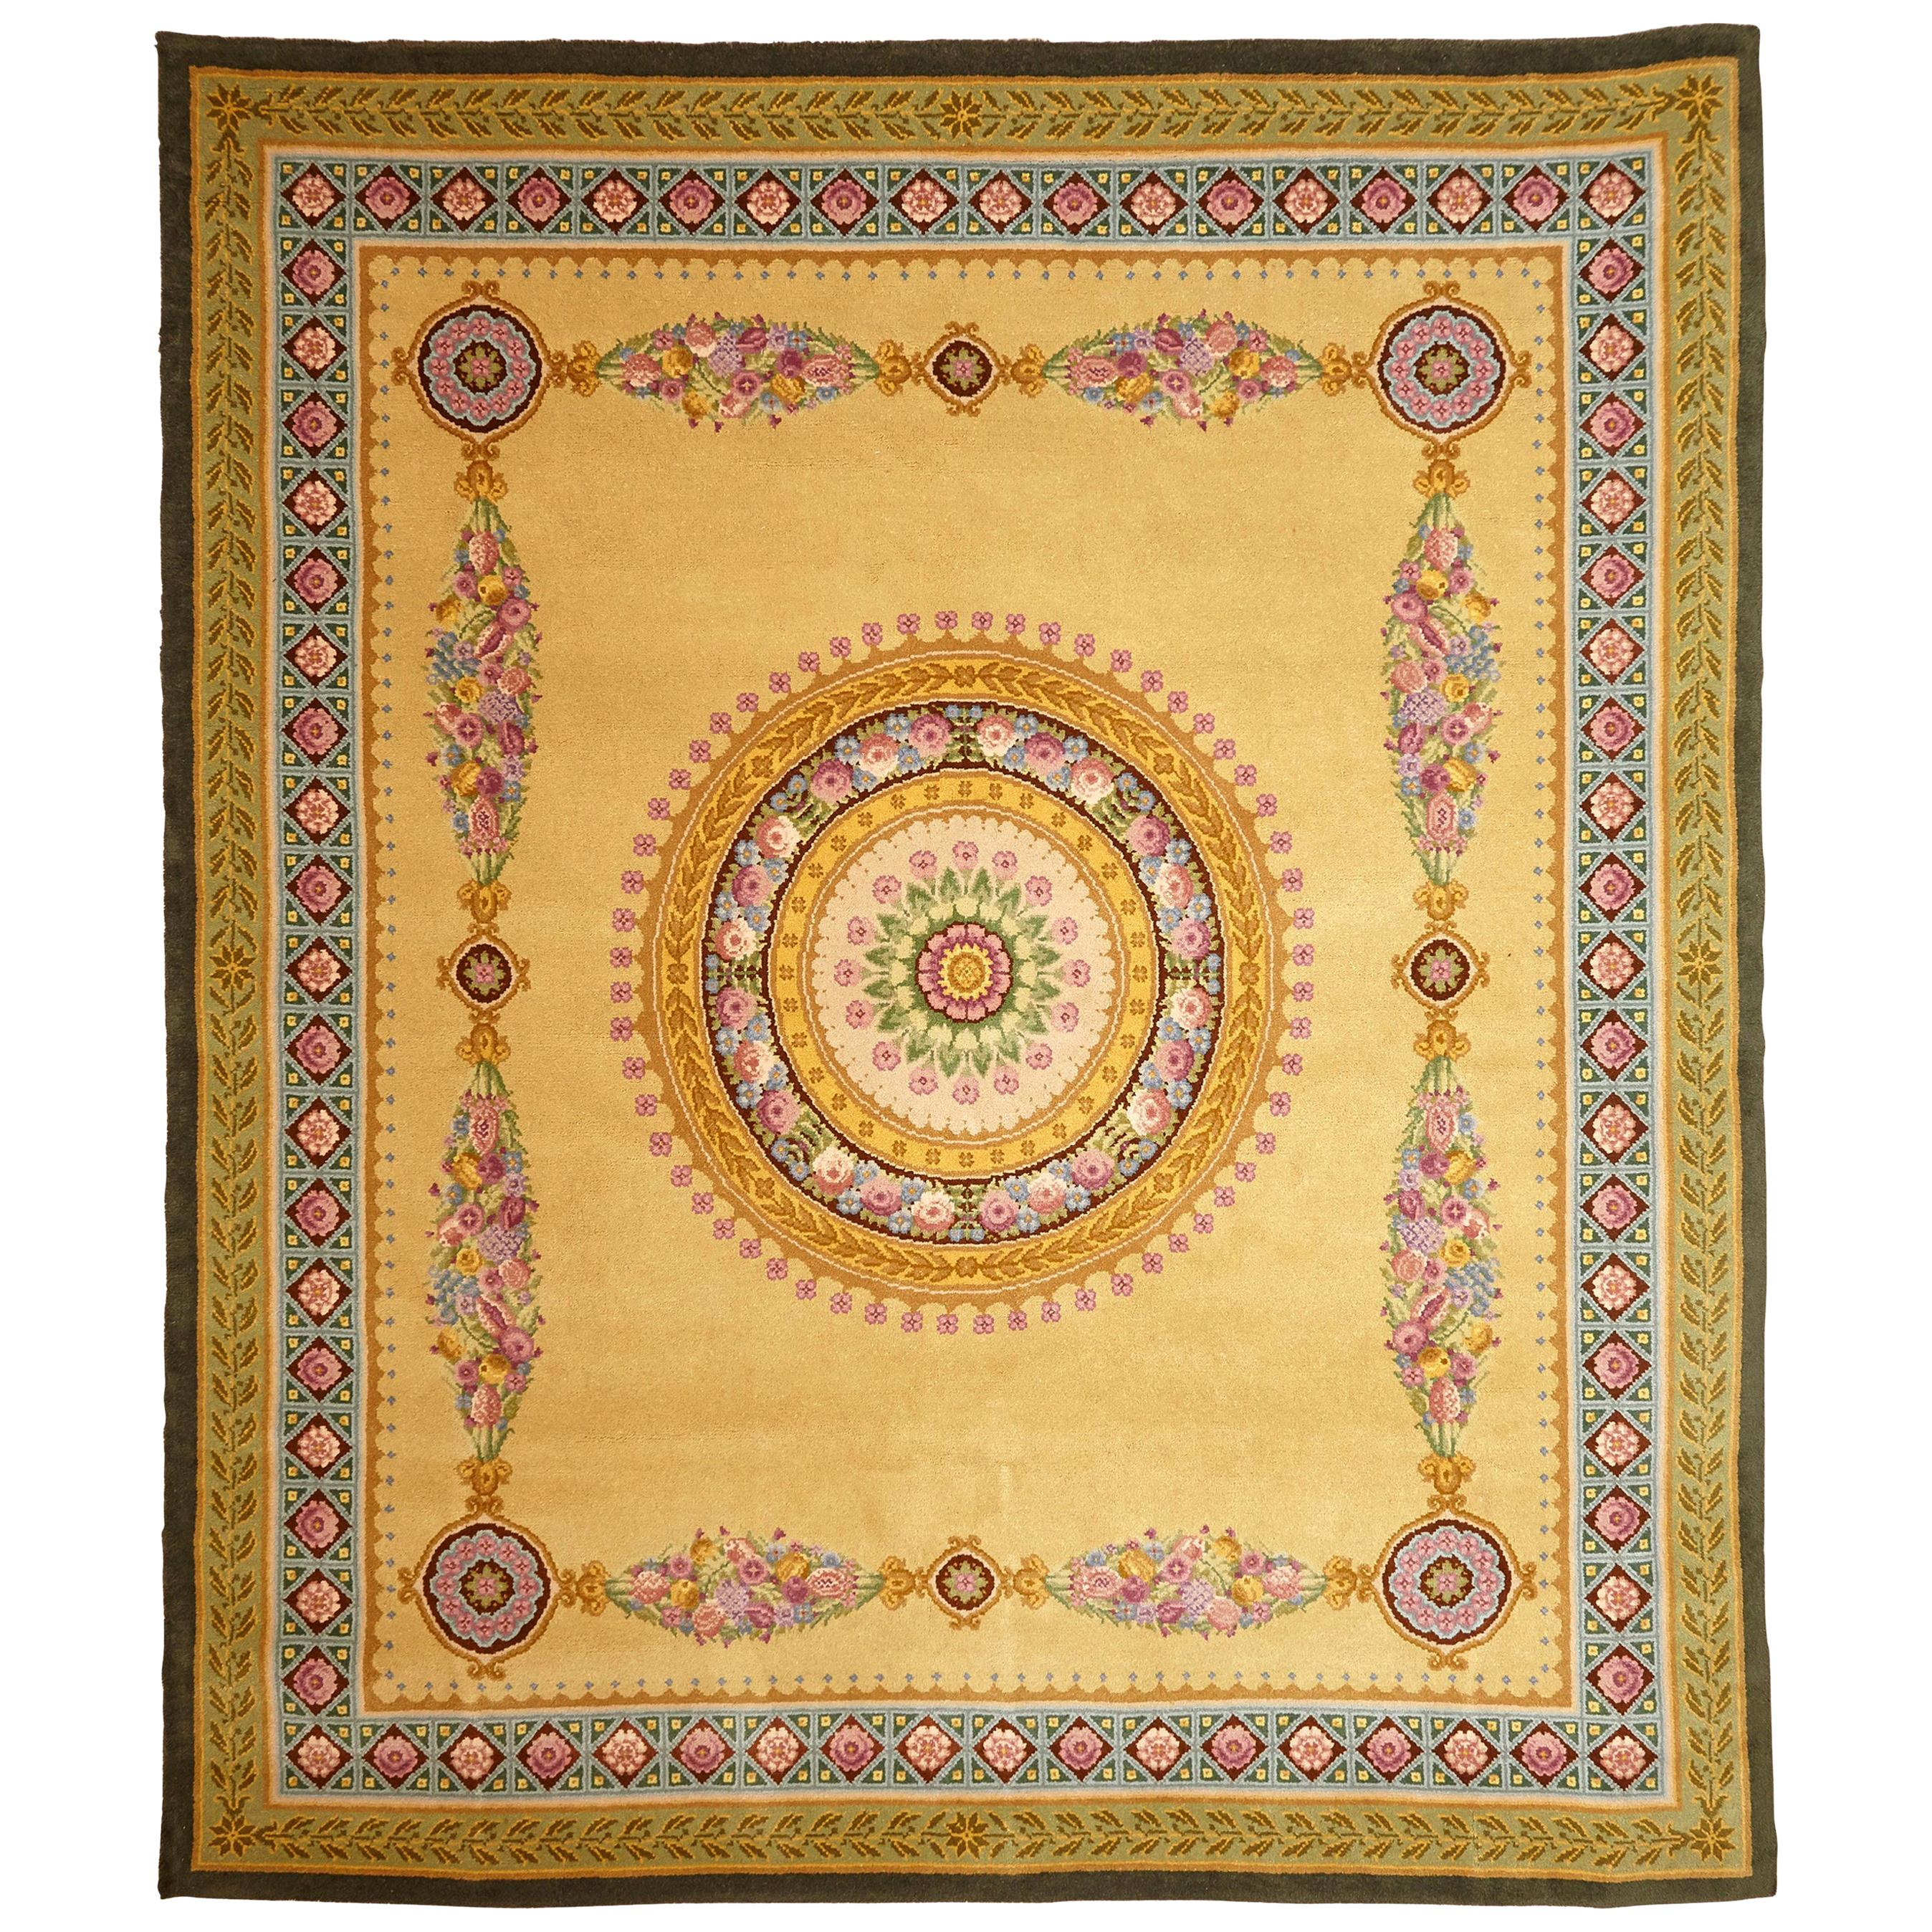 Empire Hand Knotted Wool Antique Reproduction Large Rug